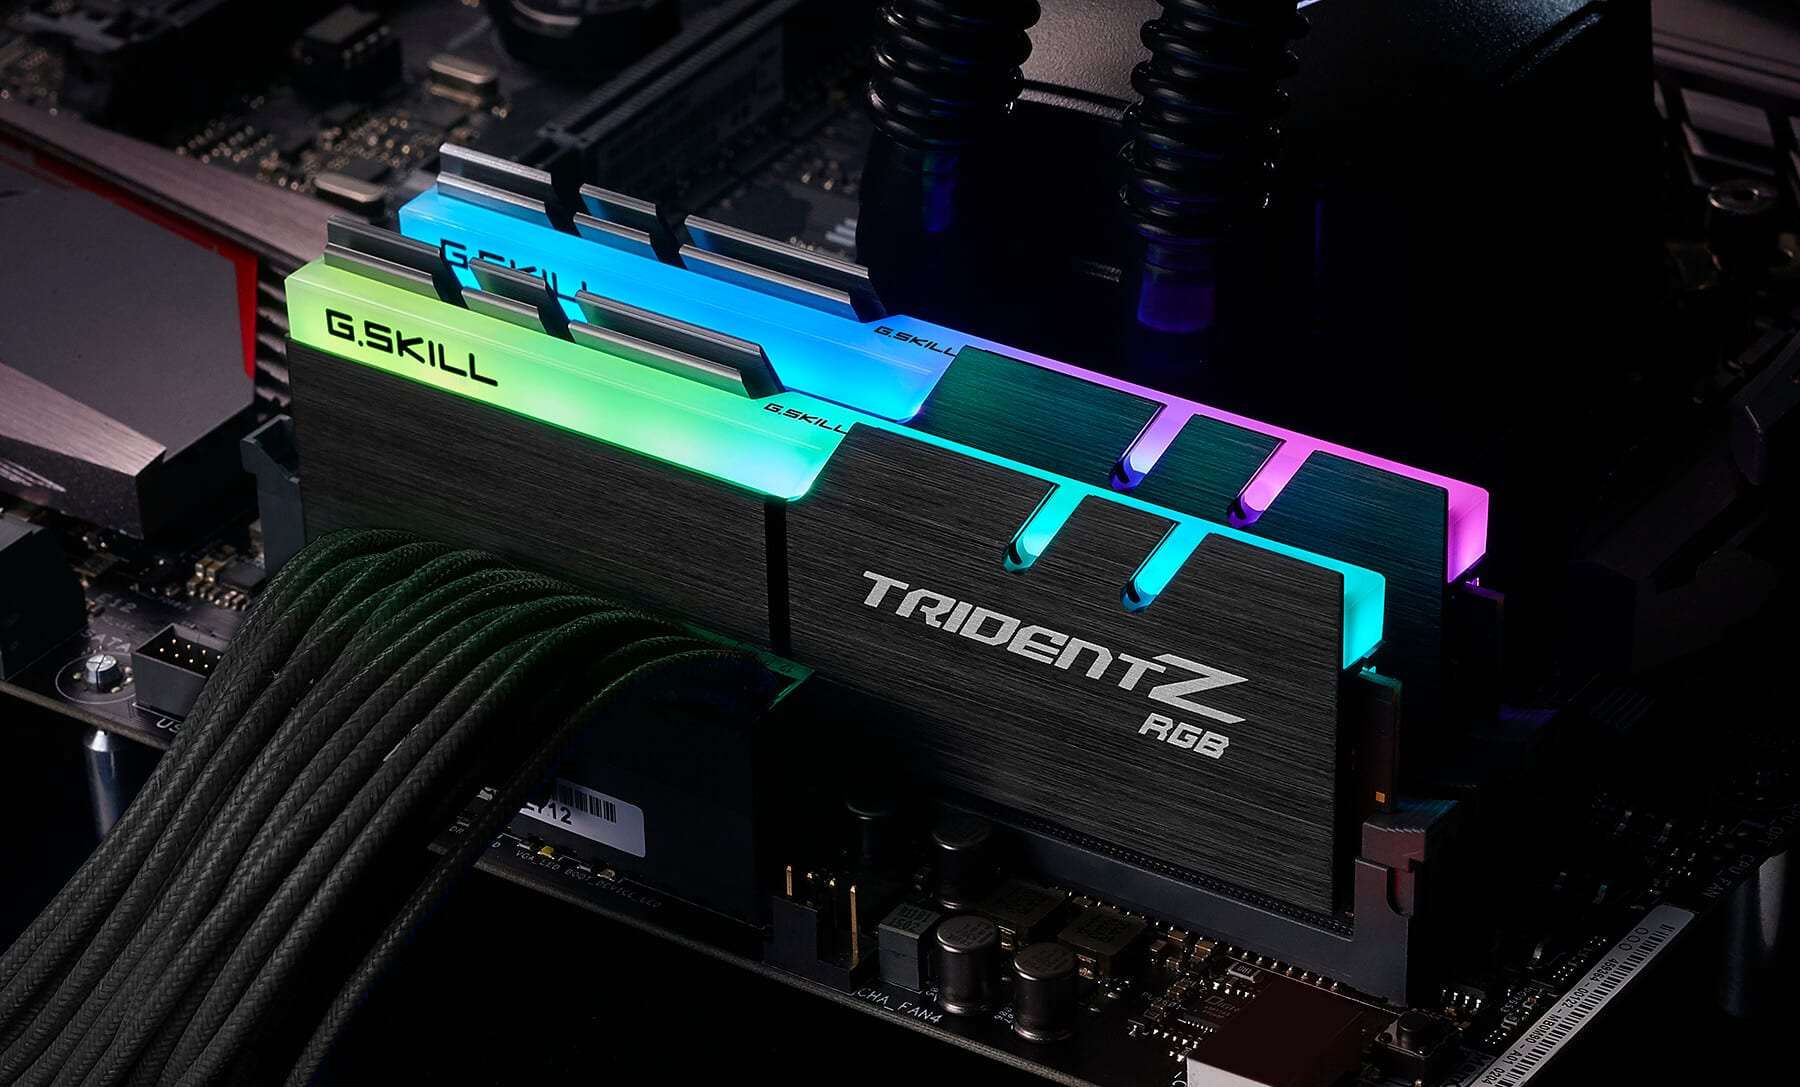 In vendita le nuove g.skill triden z rgb pc gaming.it